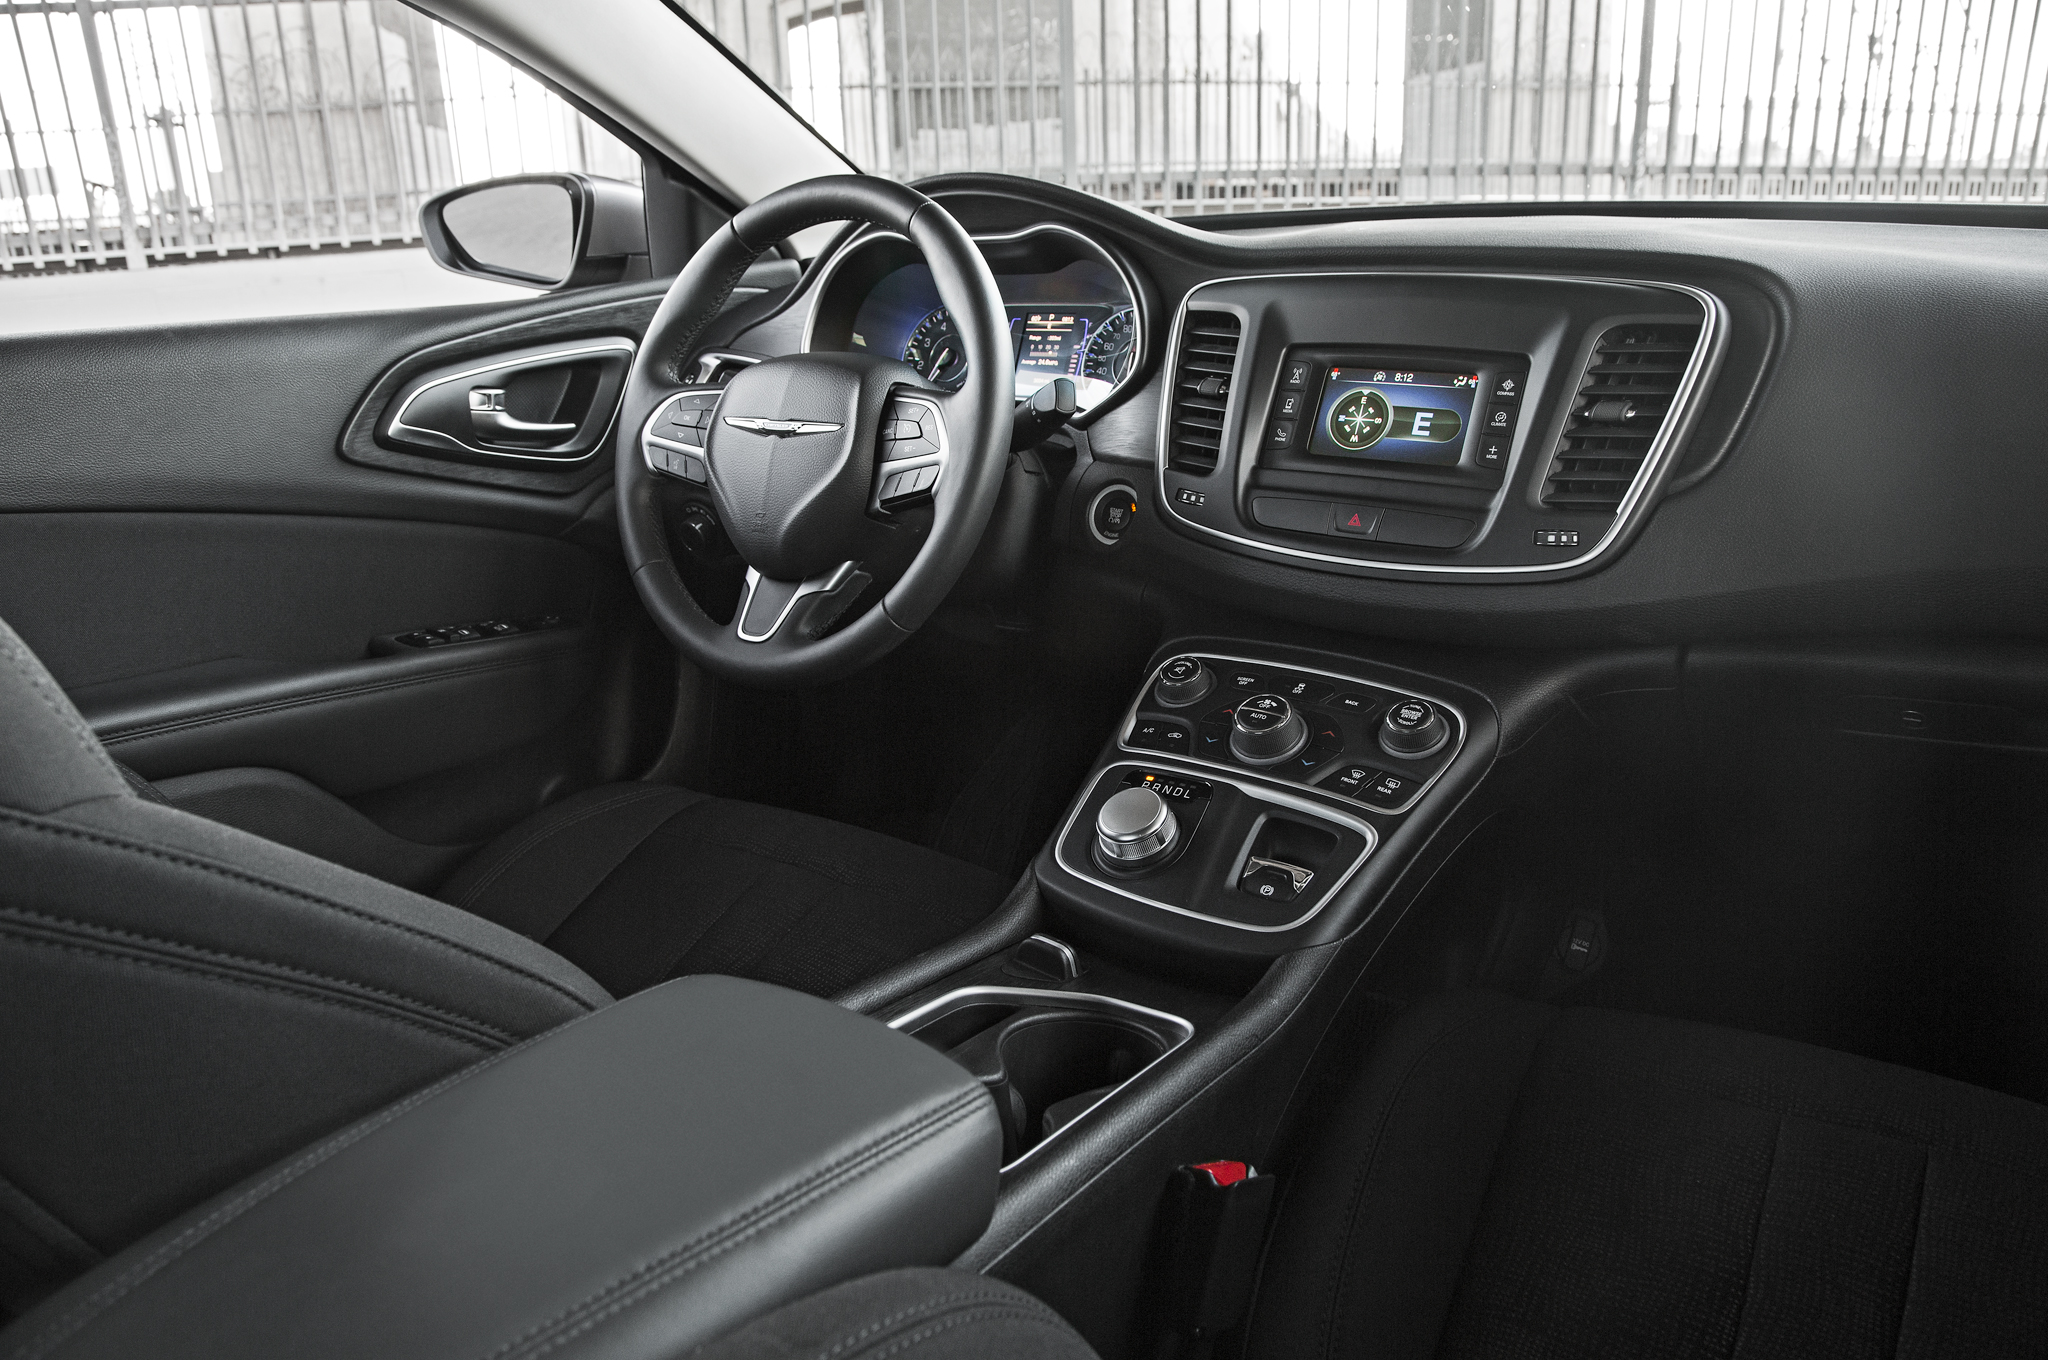 2015 Chrysler 200 Dashboard and Cockpit